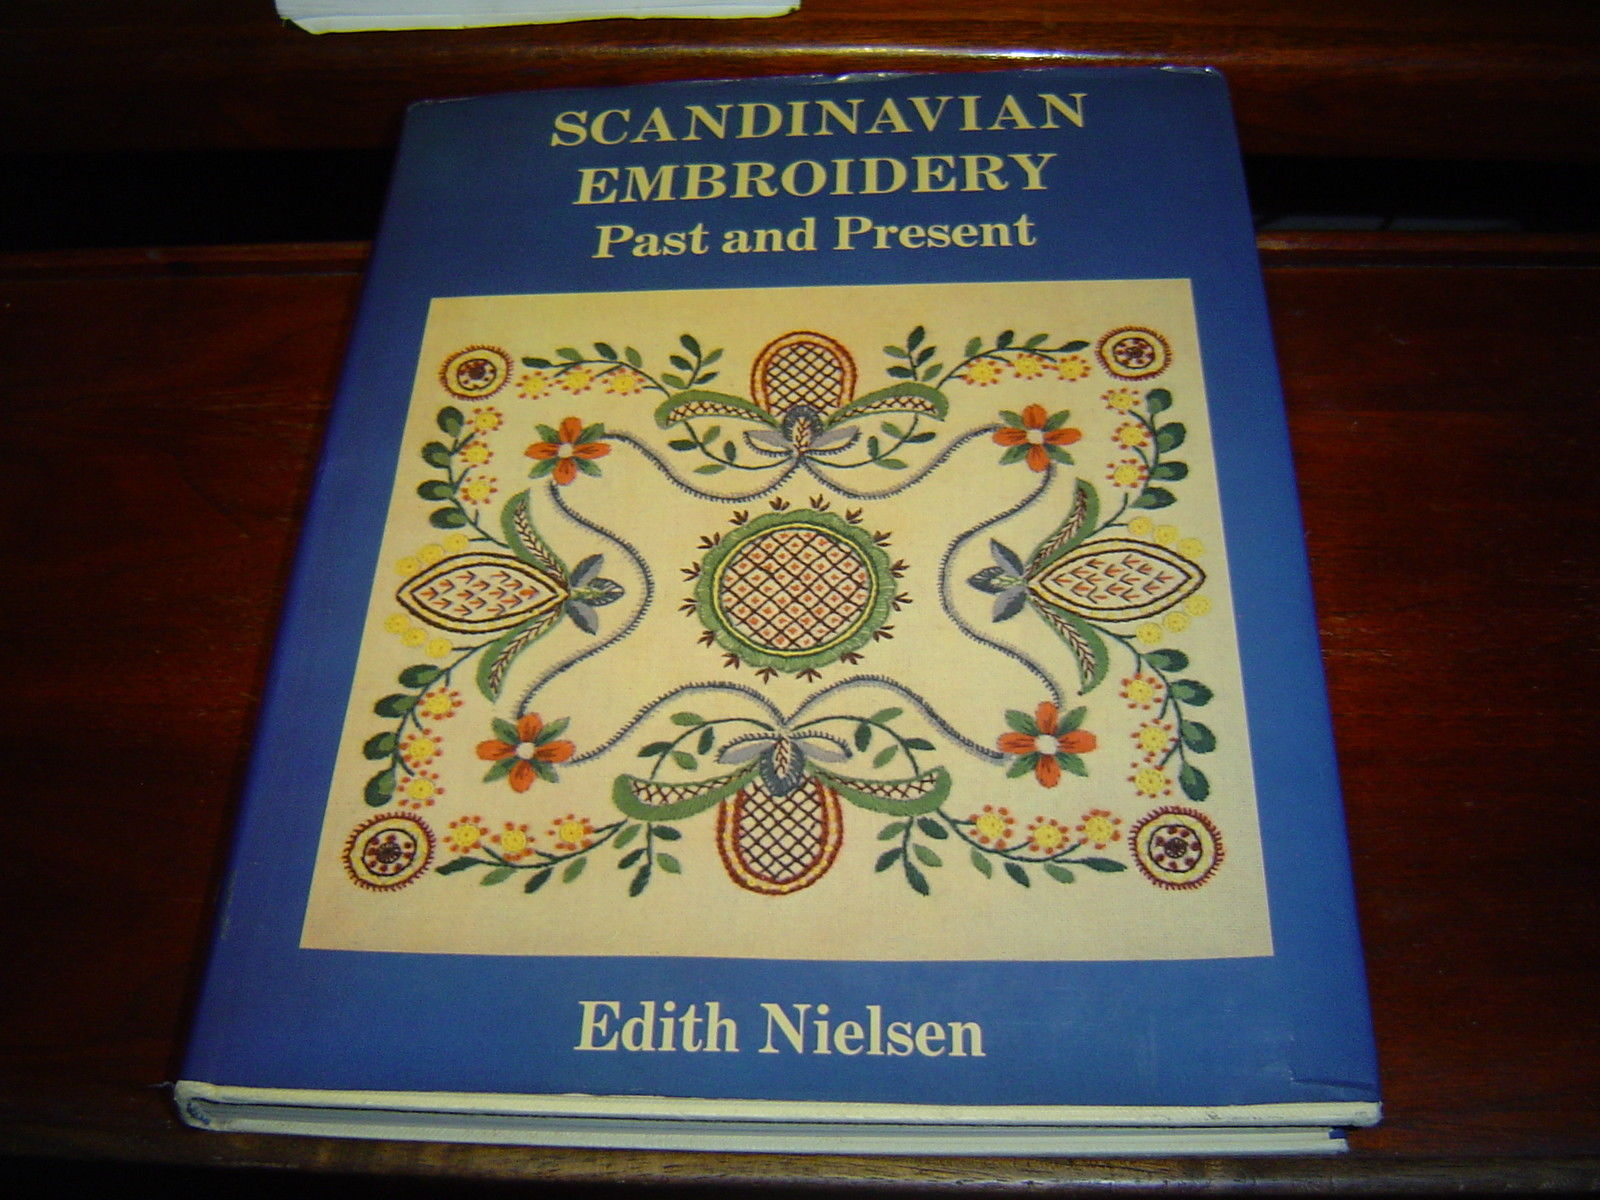 Primary image for SCANDINAVIAN EMBROIDERY Past and Present by Edith Nielsen (1978) HARDCOVER